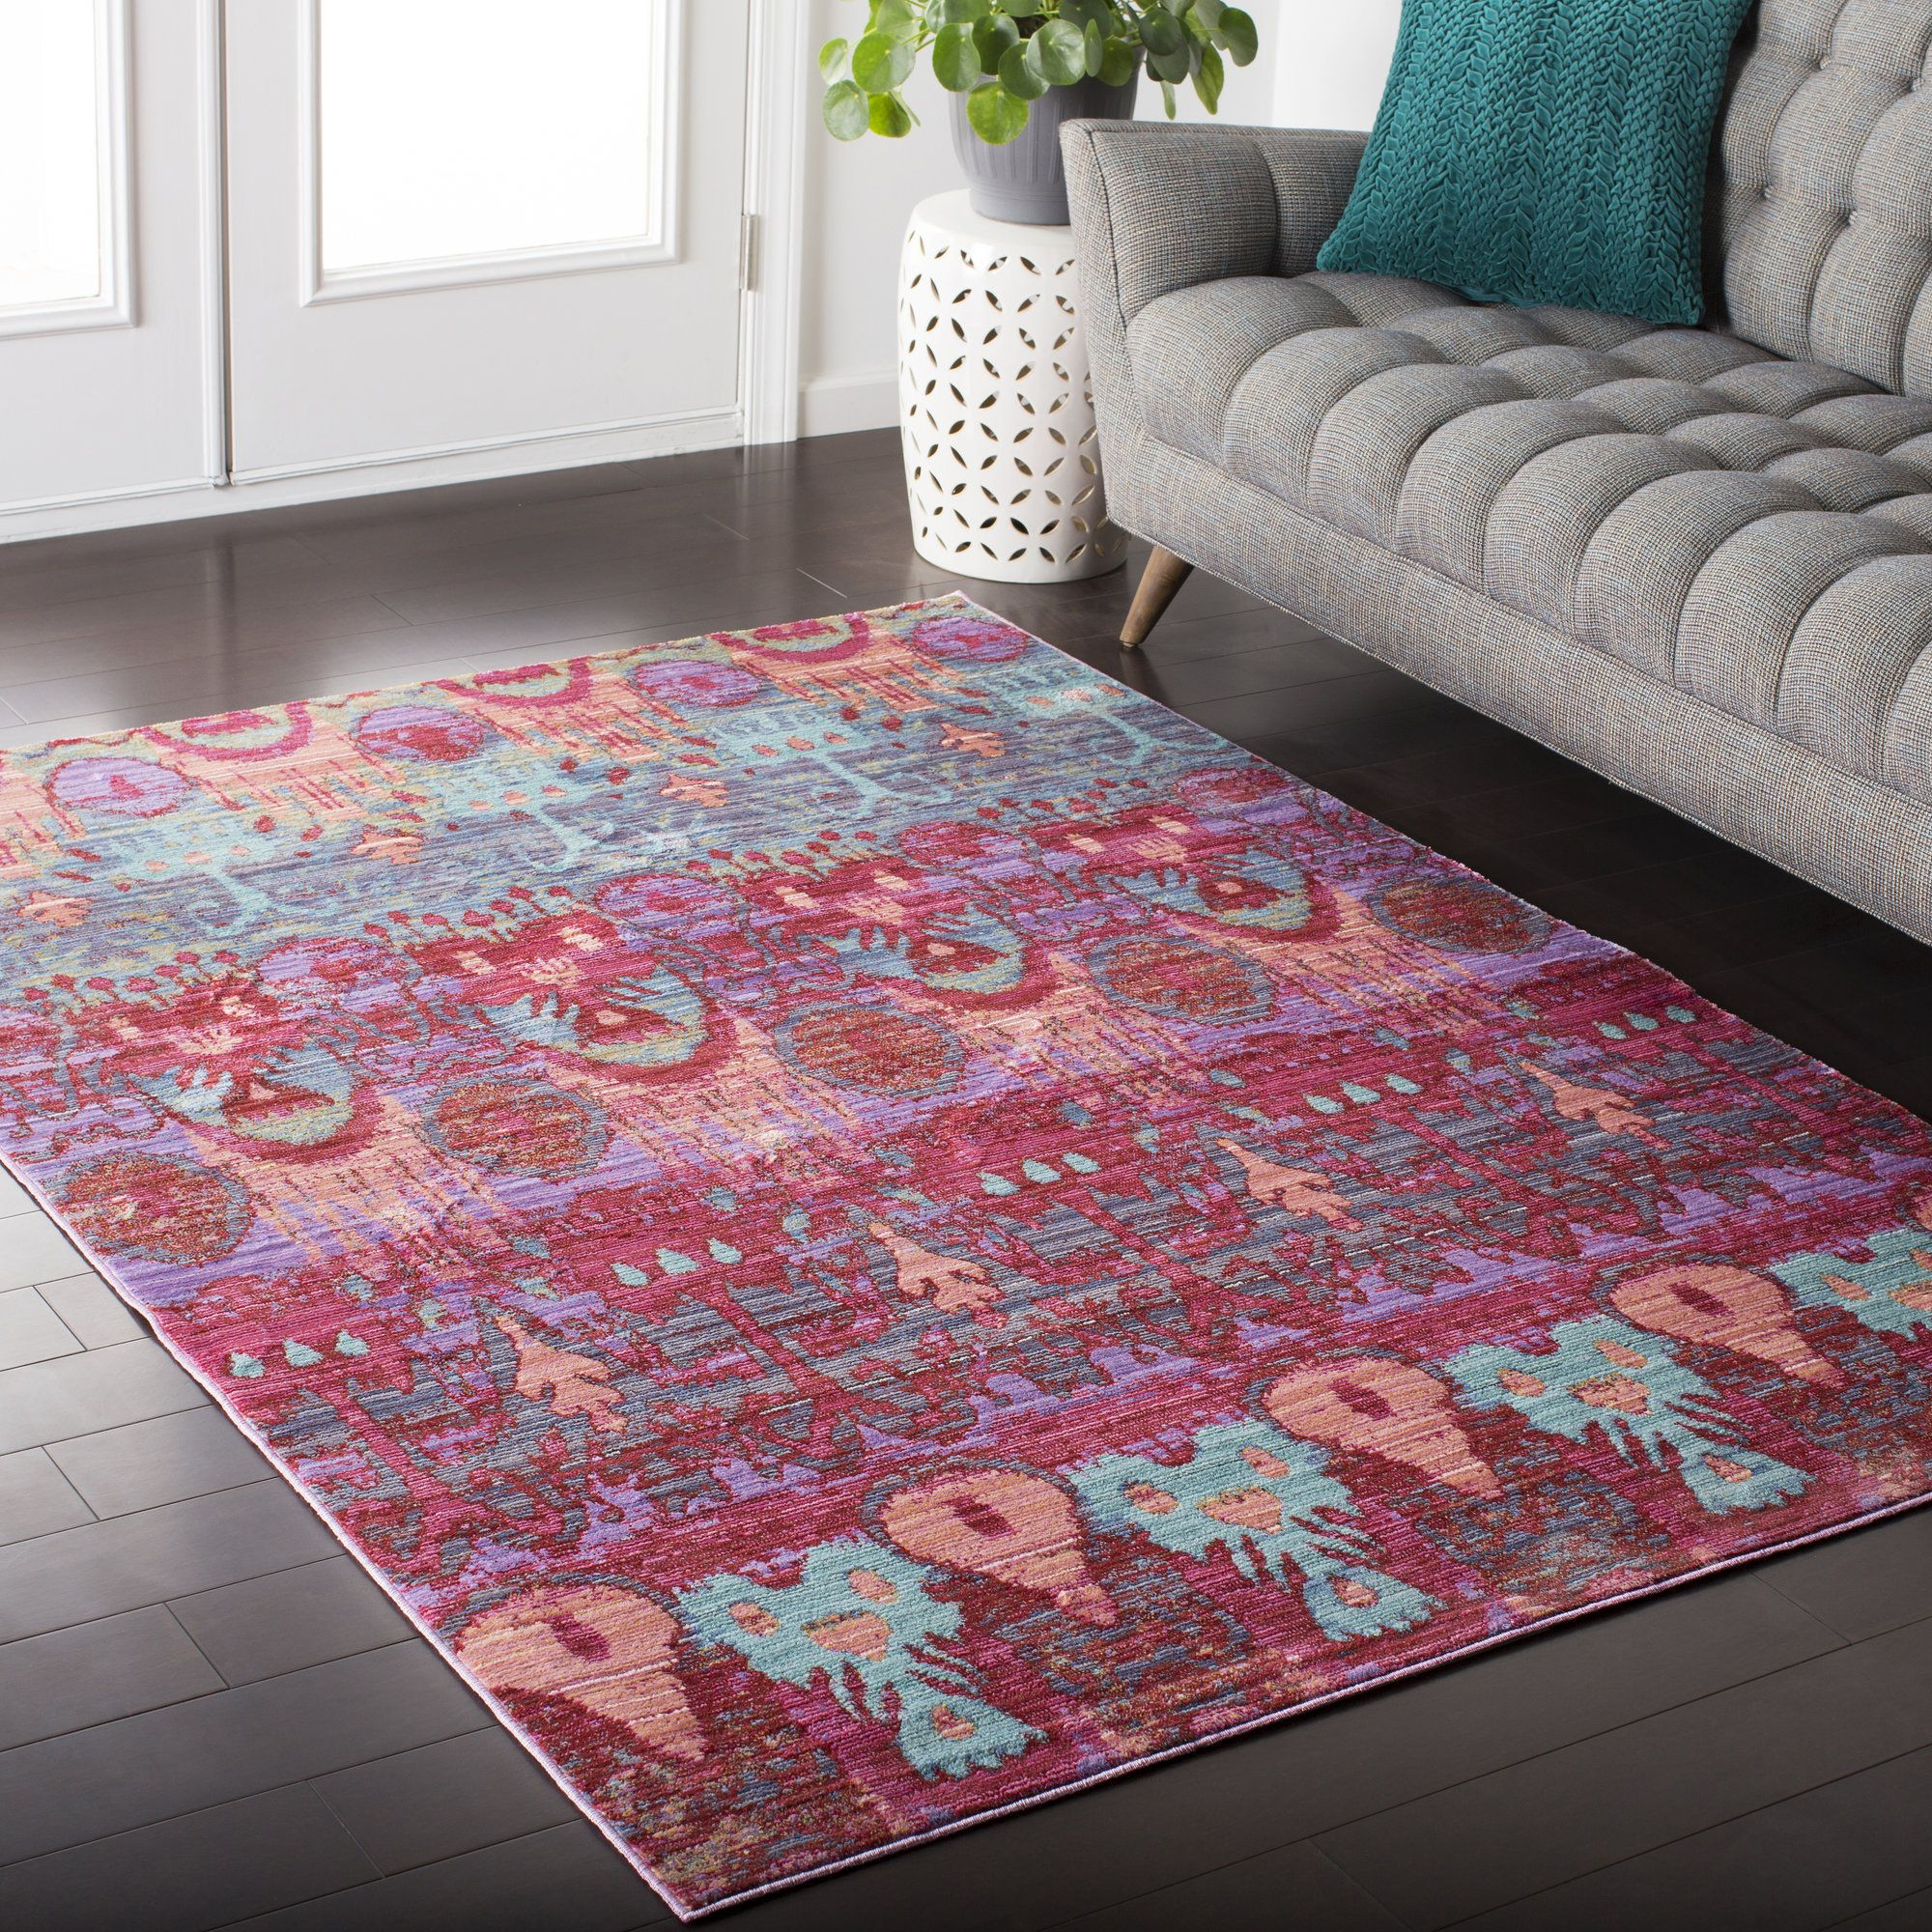 Nfl Homefield Area Rug Purple Area Rugs Area Rug Sizes Teal Area Rug